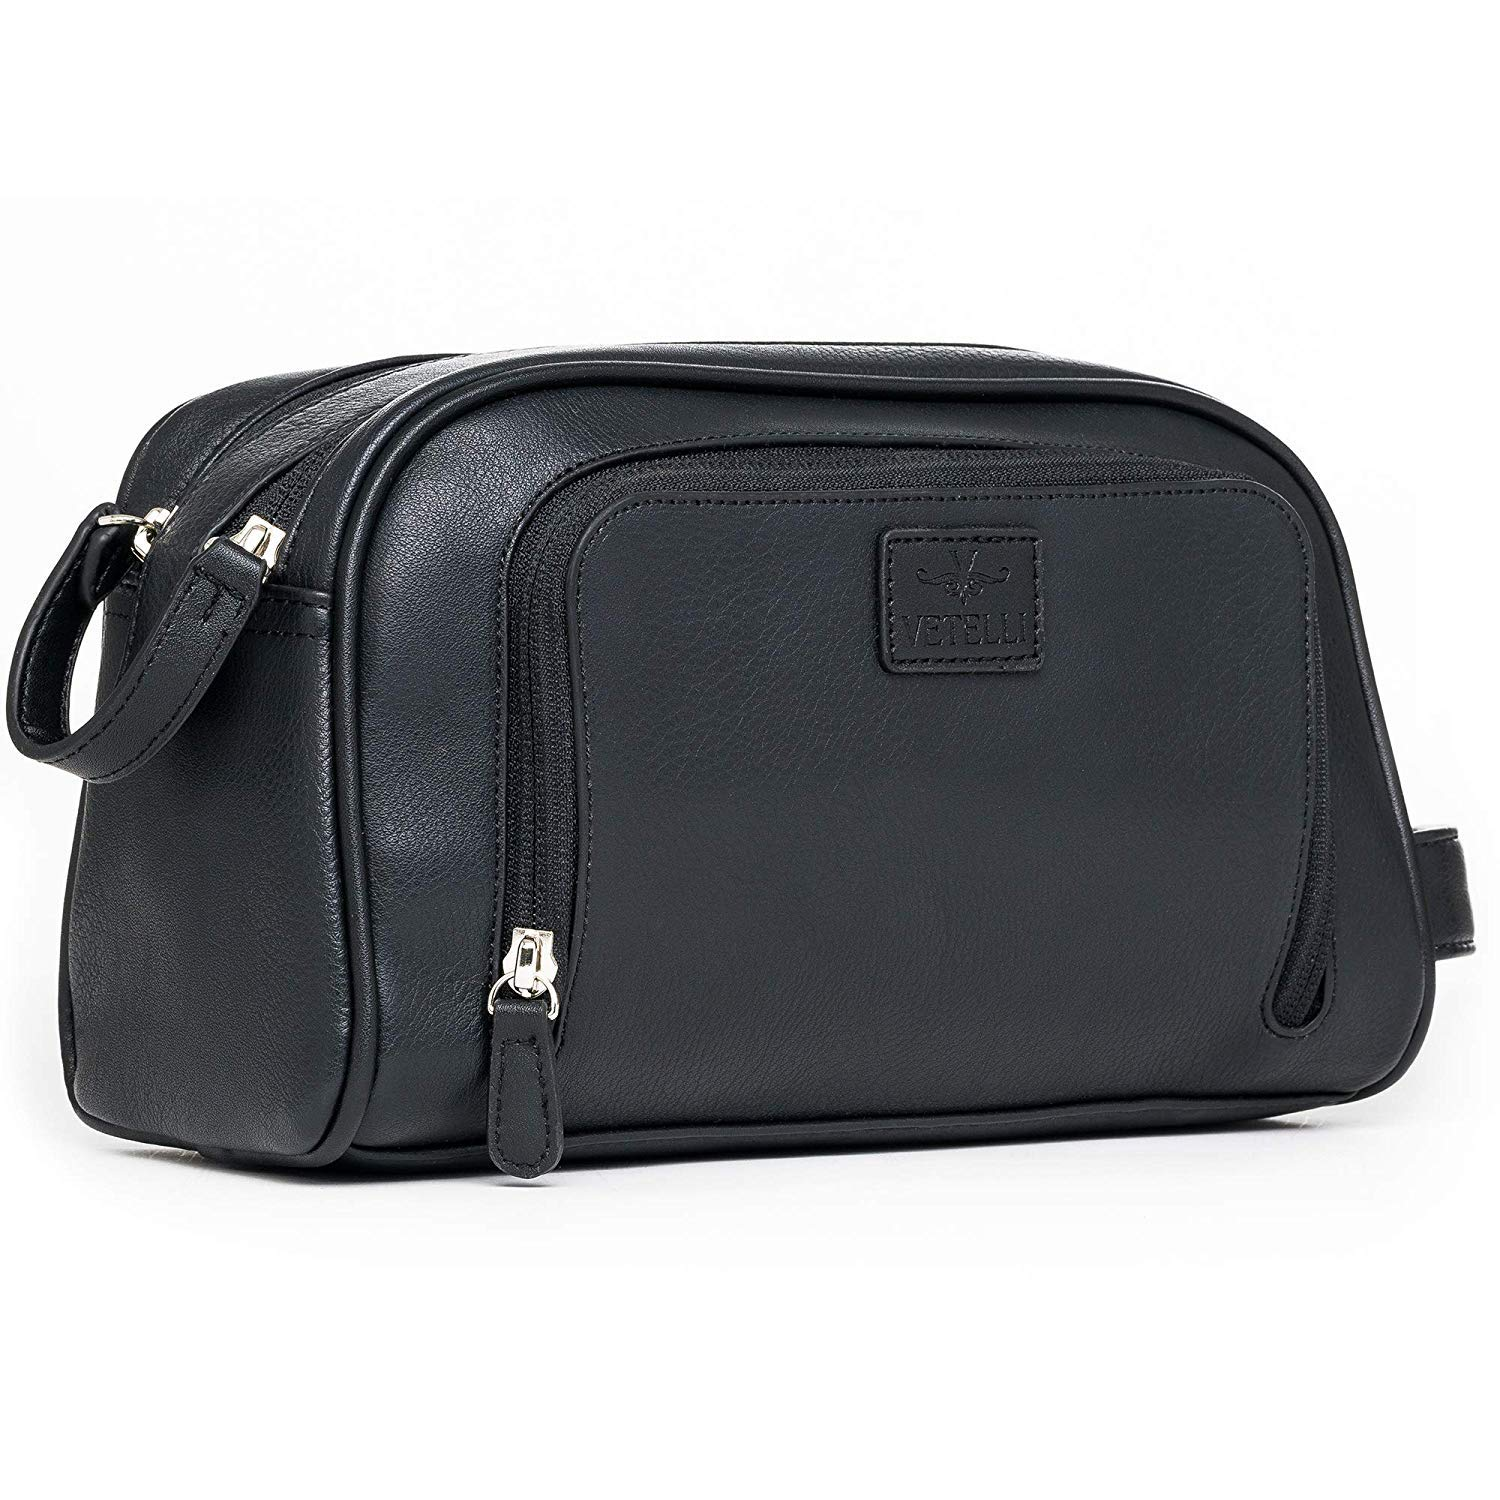 9eb7af3492070b Amazon.com: Vetelli Gio Leather Toiletry Bag for Men - Dopp Kit - Handmade  for Travelling Vacations and Adventures (Black): Jewelry